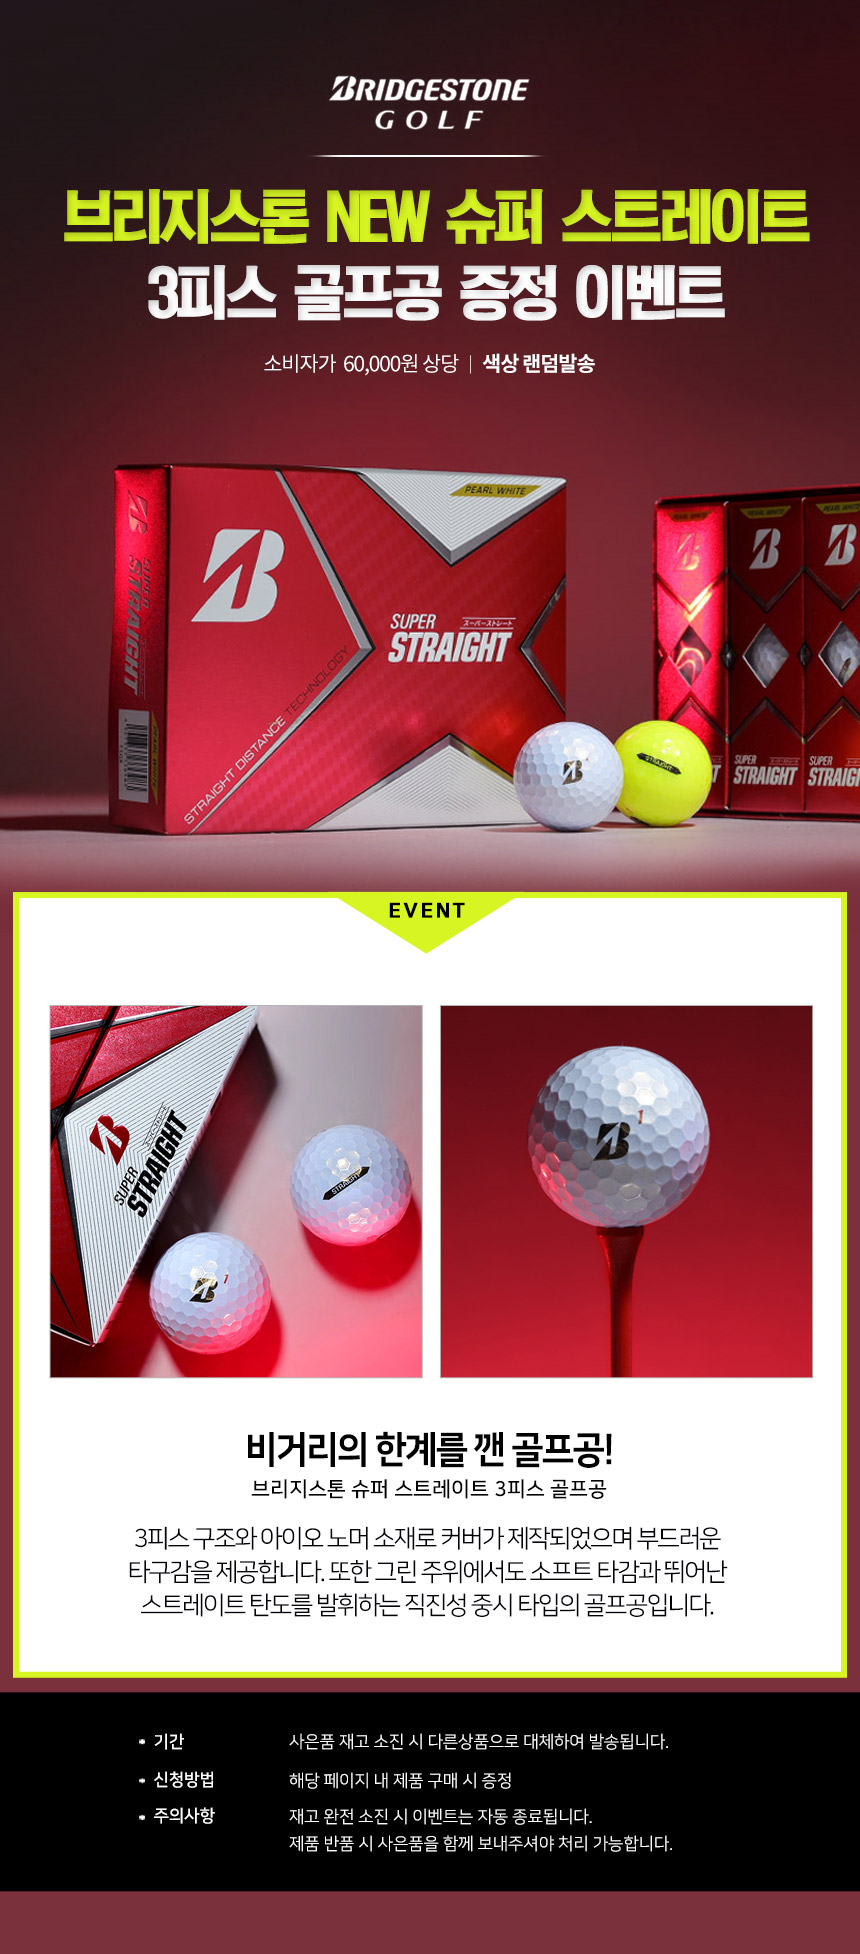 bridgestone_tour_B_xs_ball_limited_gift_21.jpg